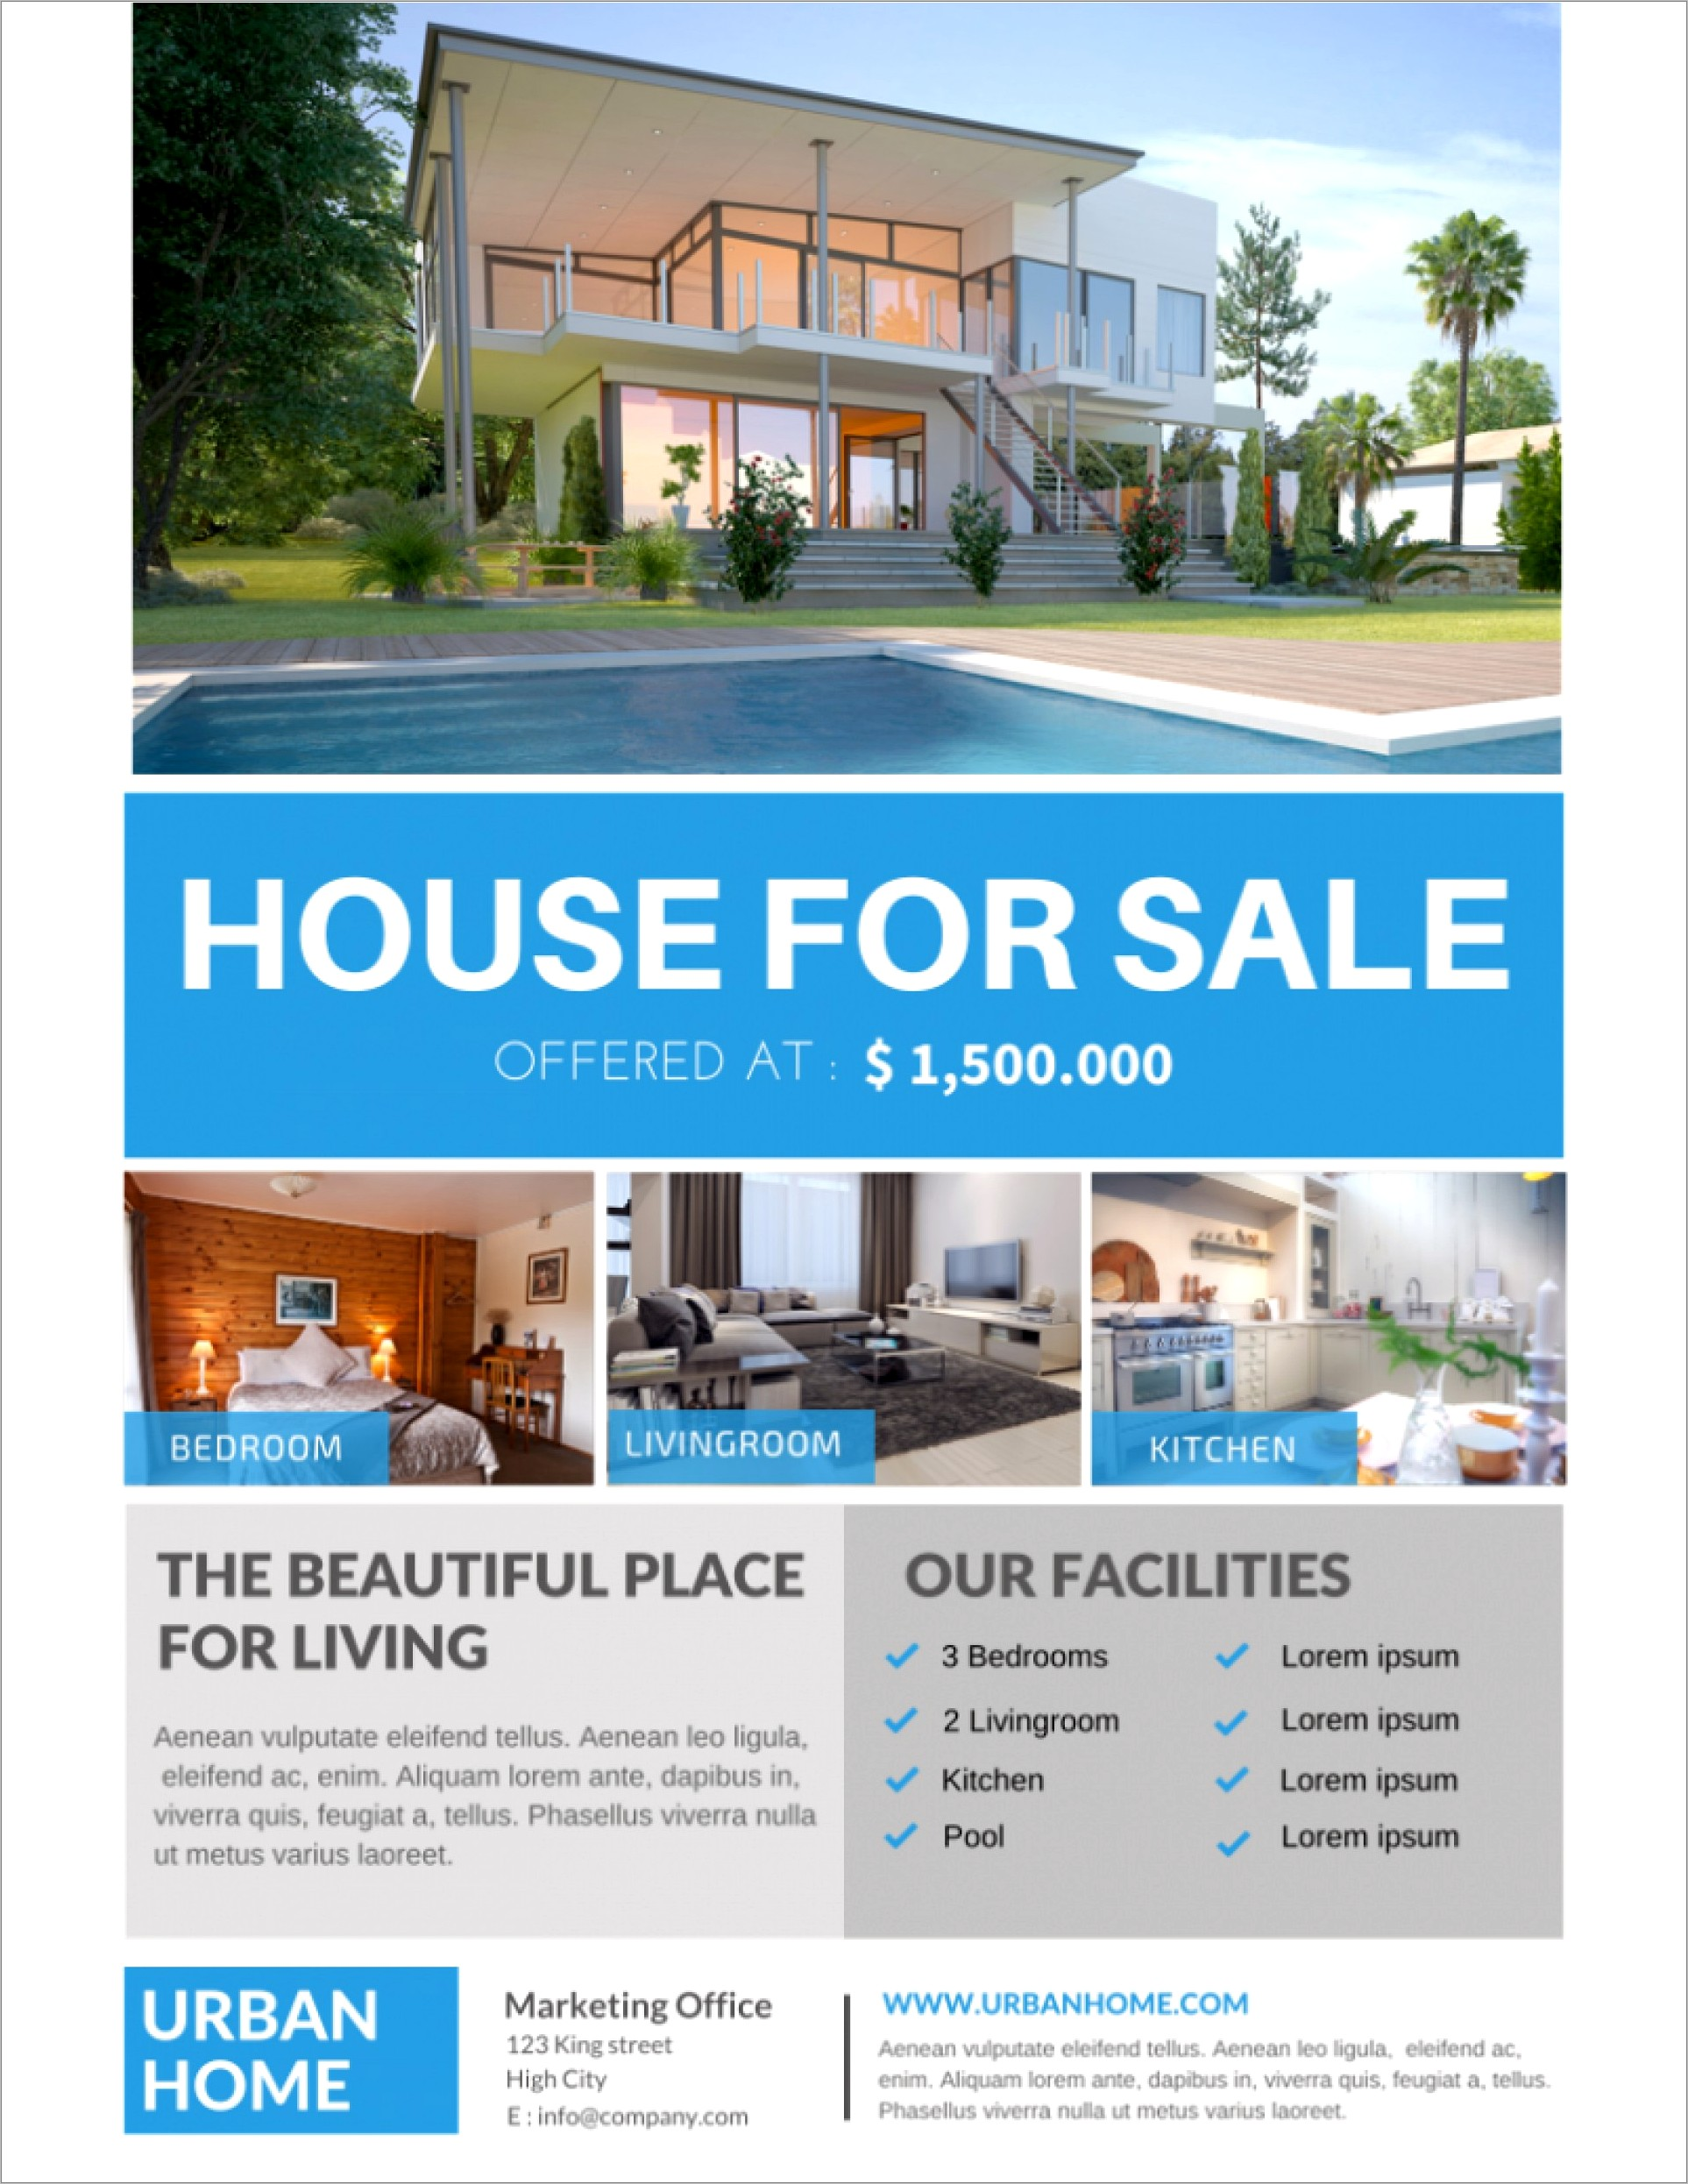 House For Sale Flyer Template Free